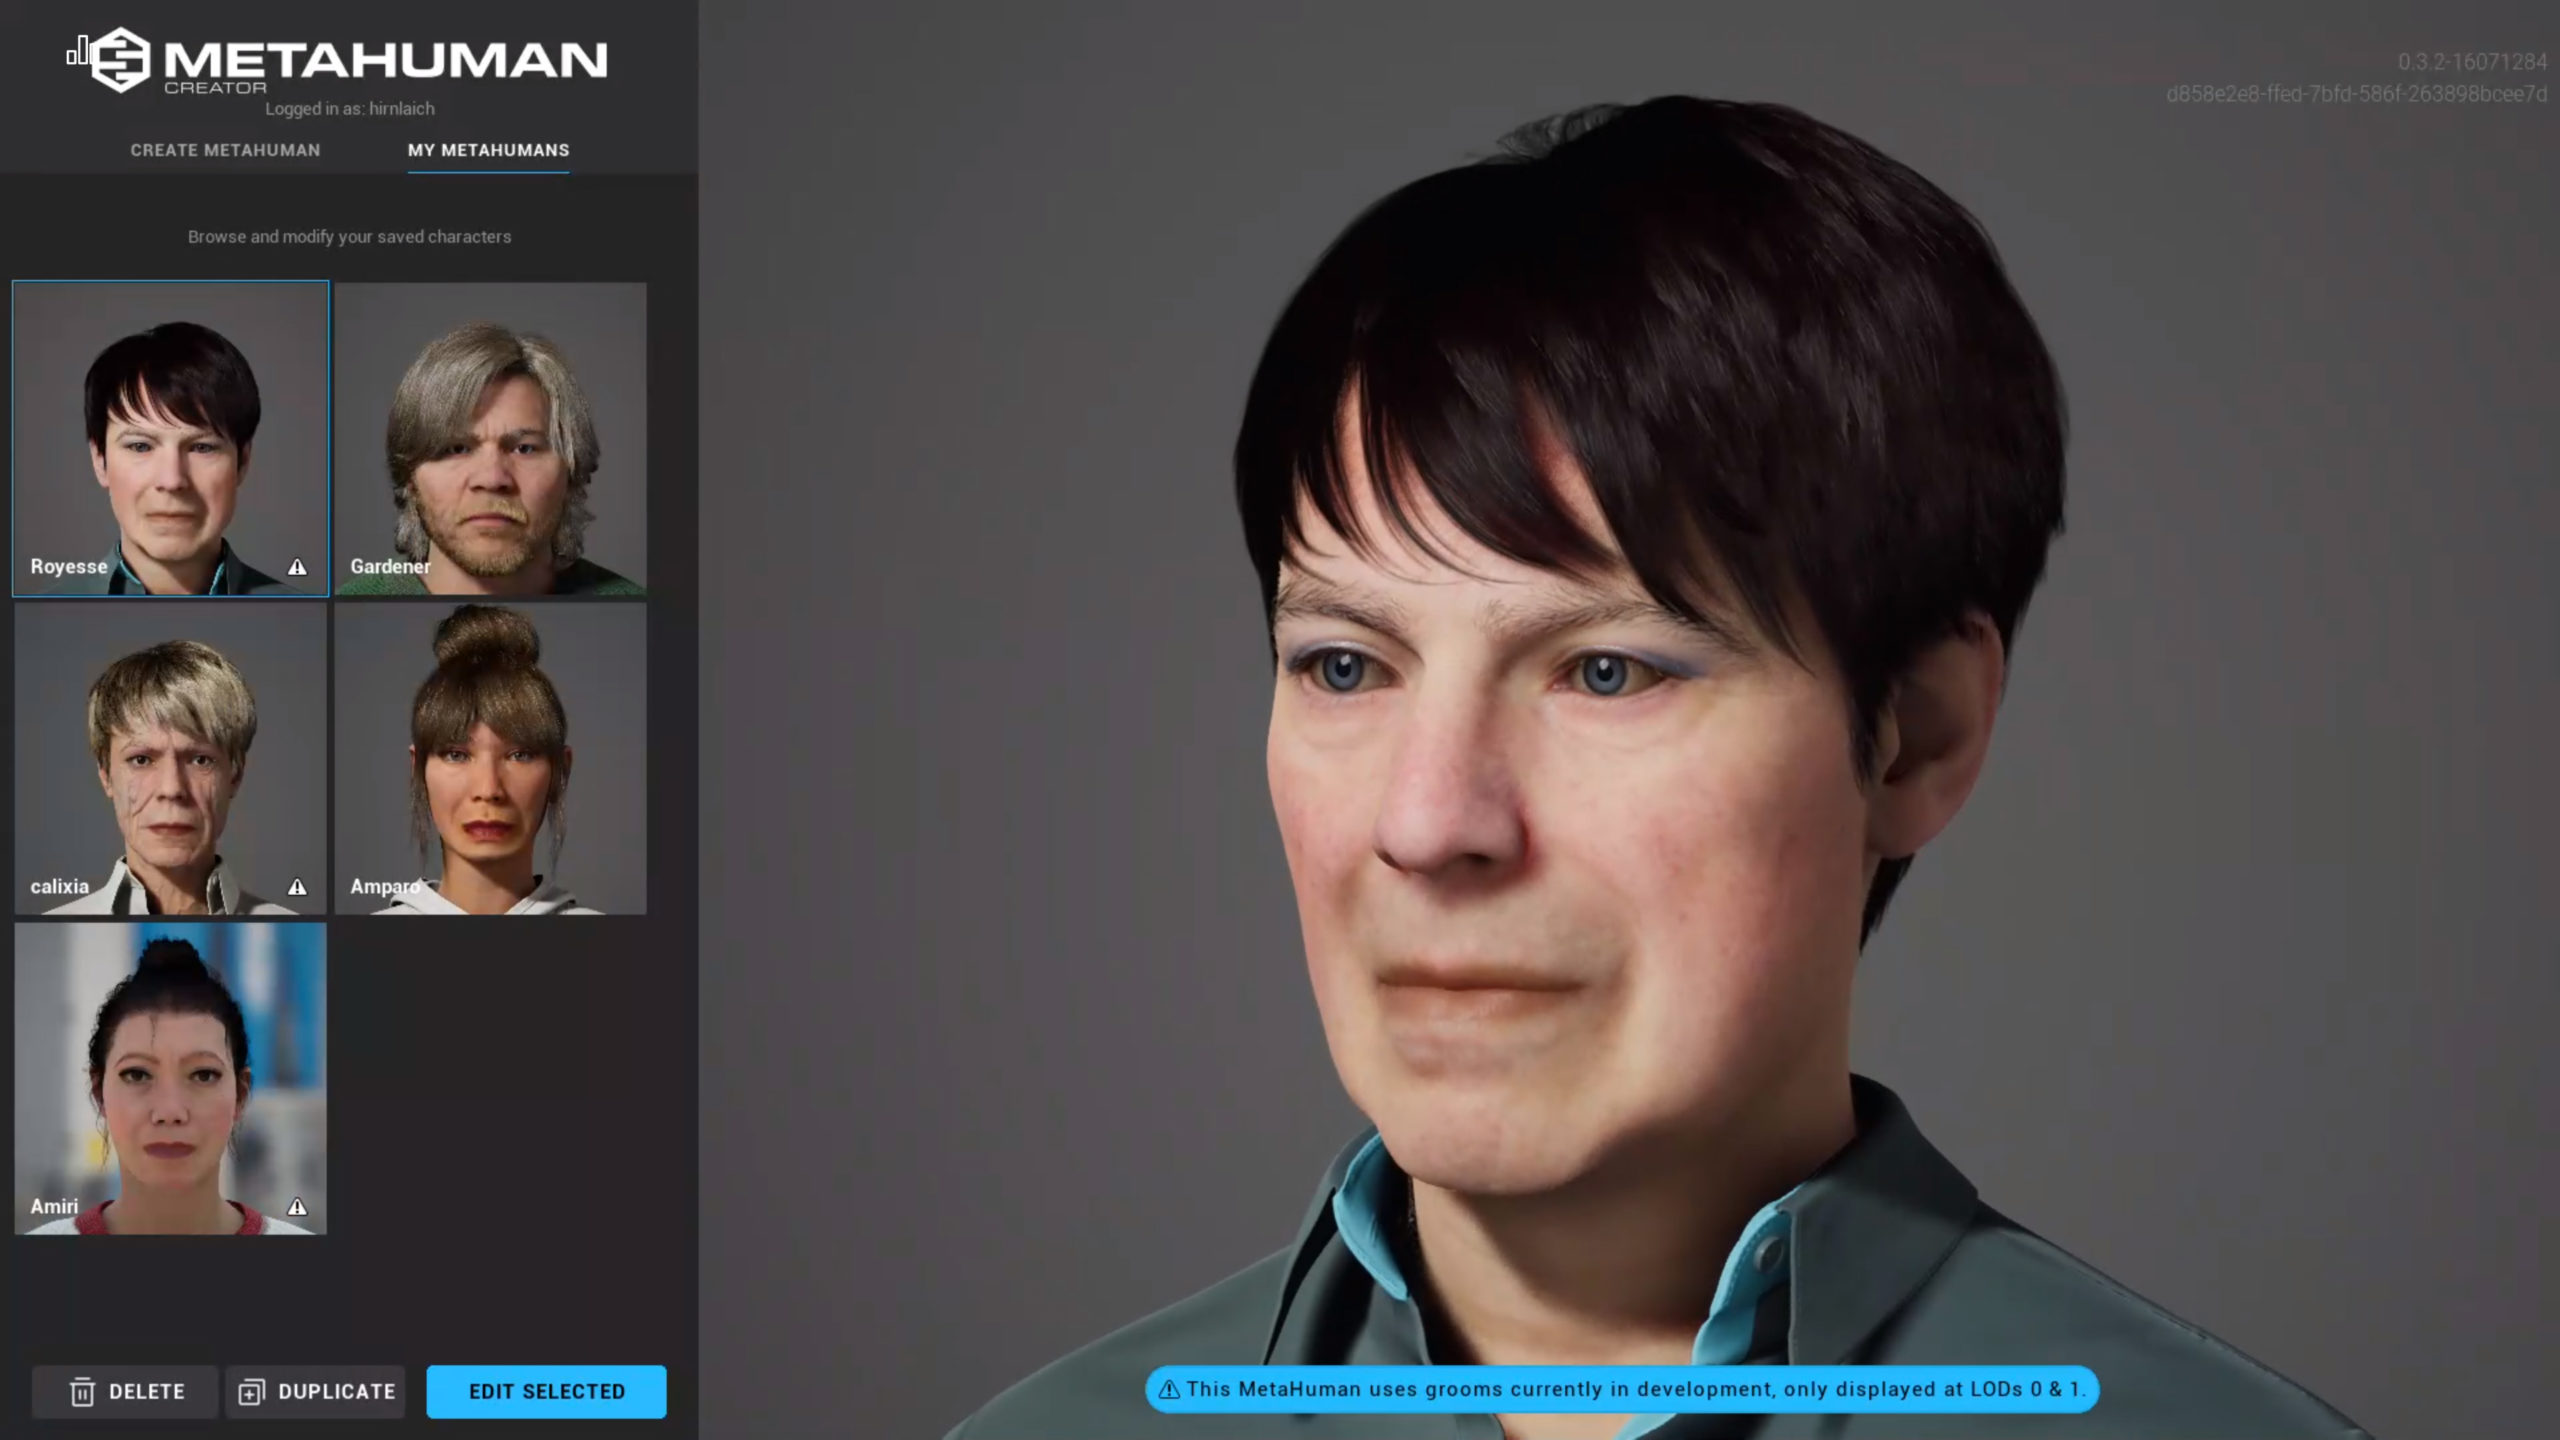 This is Royesse a MetaHuman created with the Unreal Engine Metahuman Creator